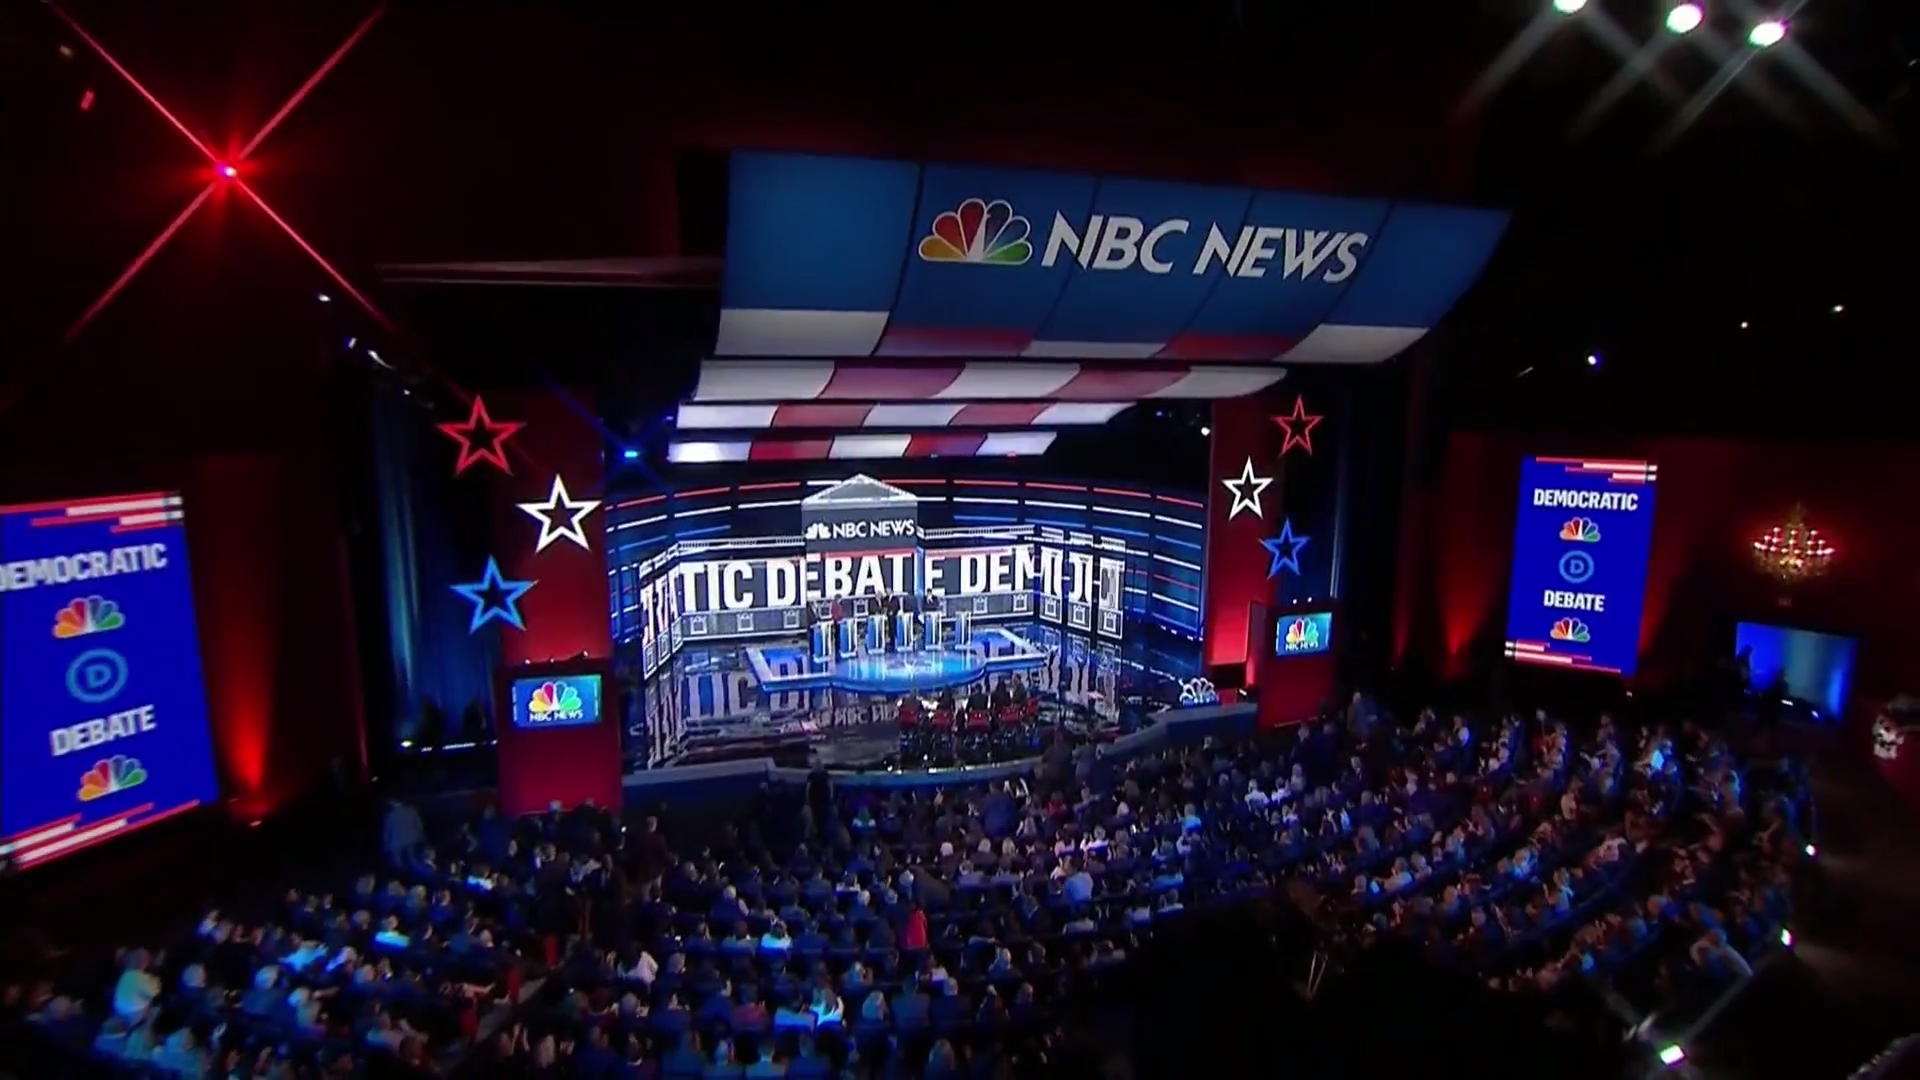 Democrats pile in on Bloomberg in lively TV debate